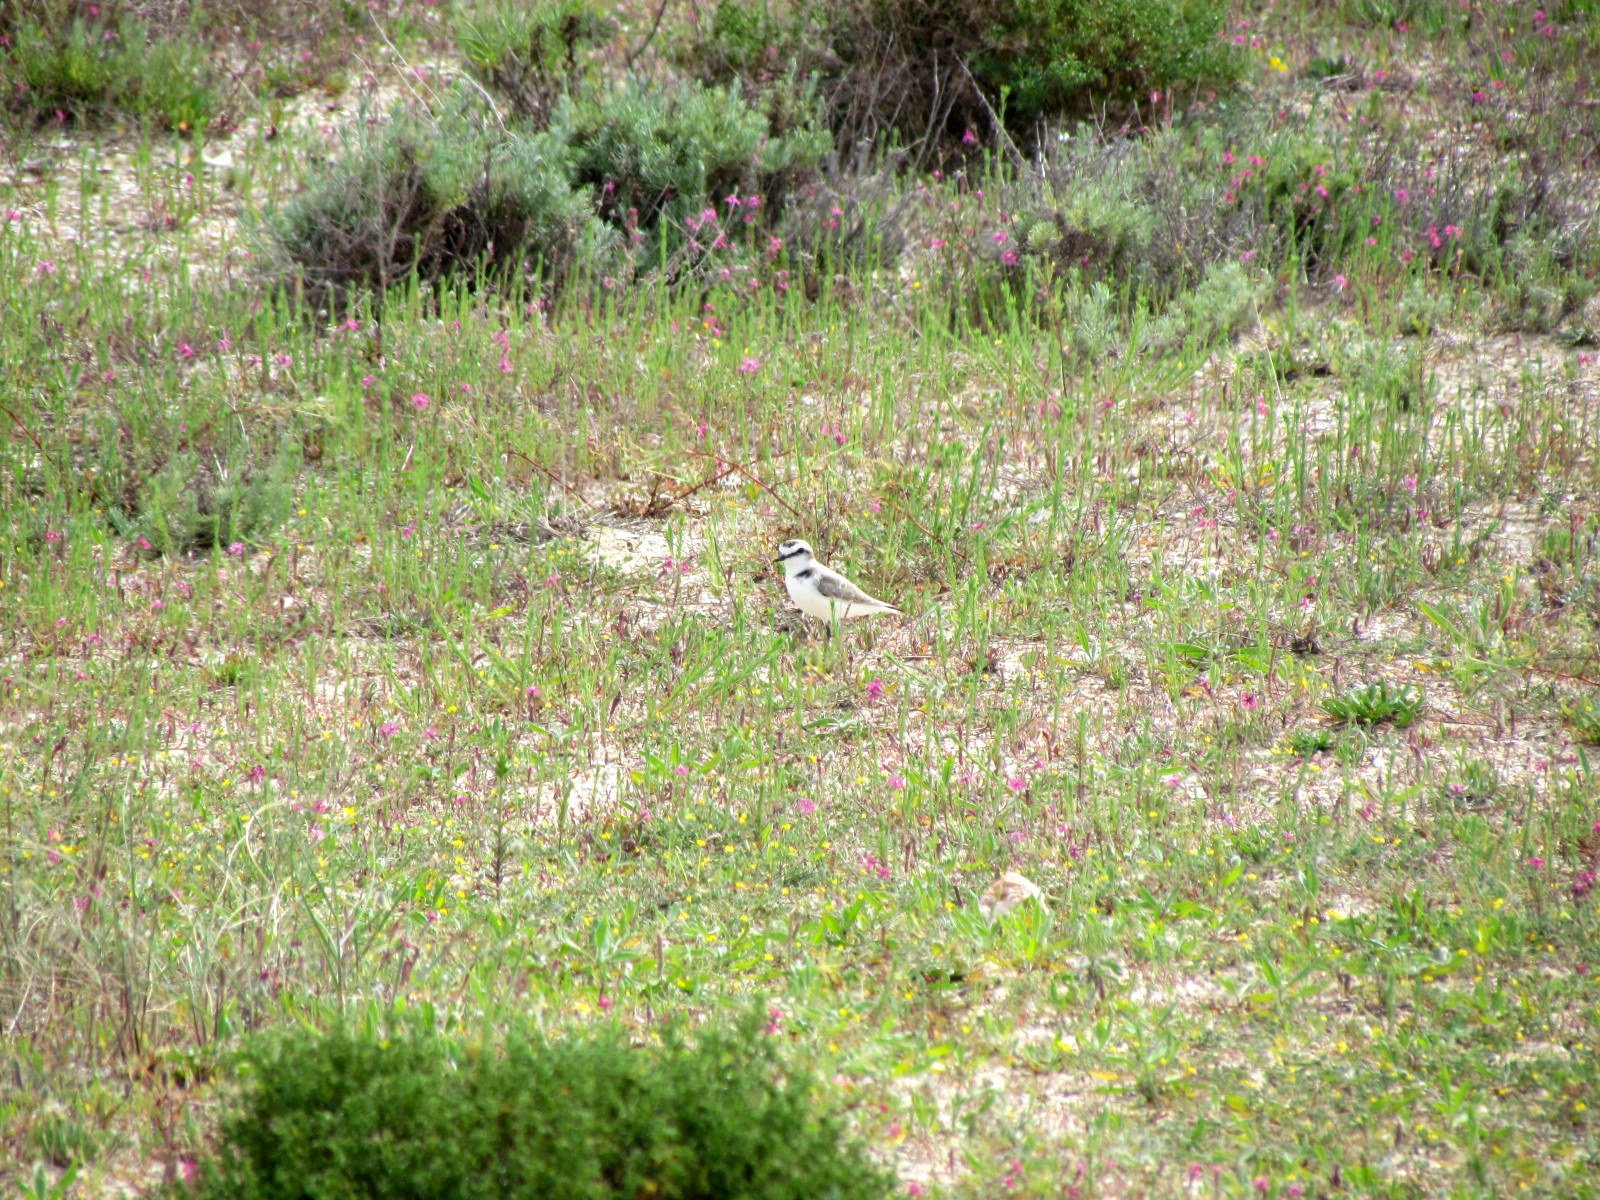 Kentish Plover on the ground